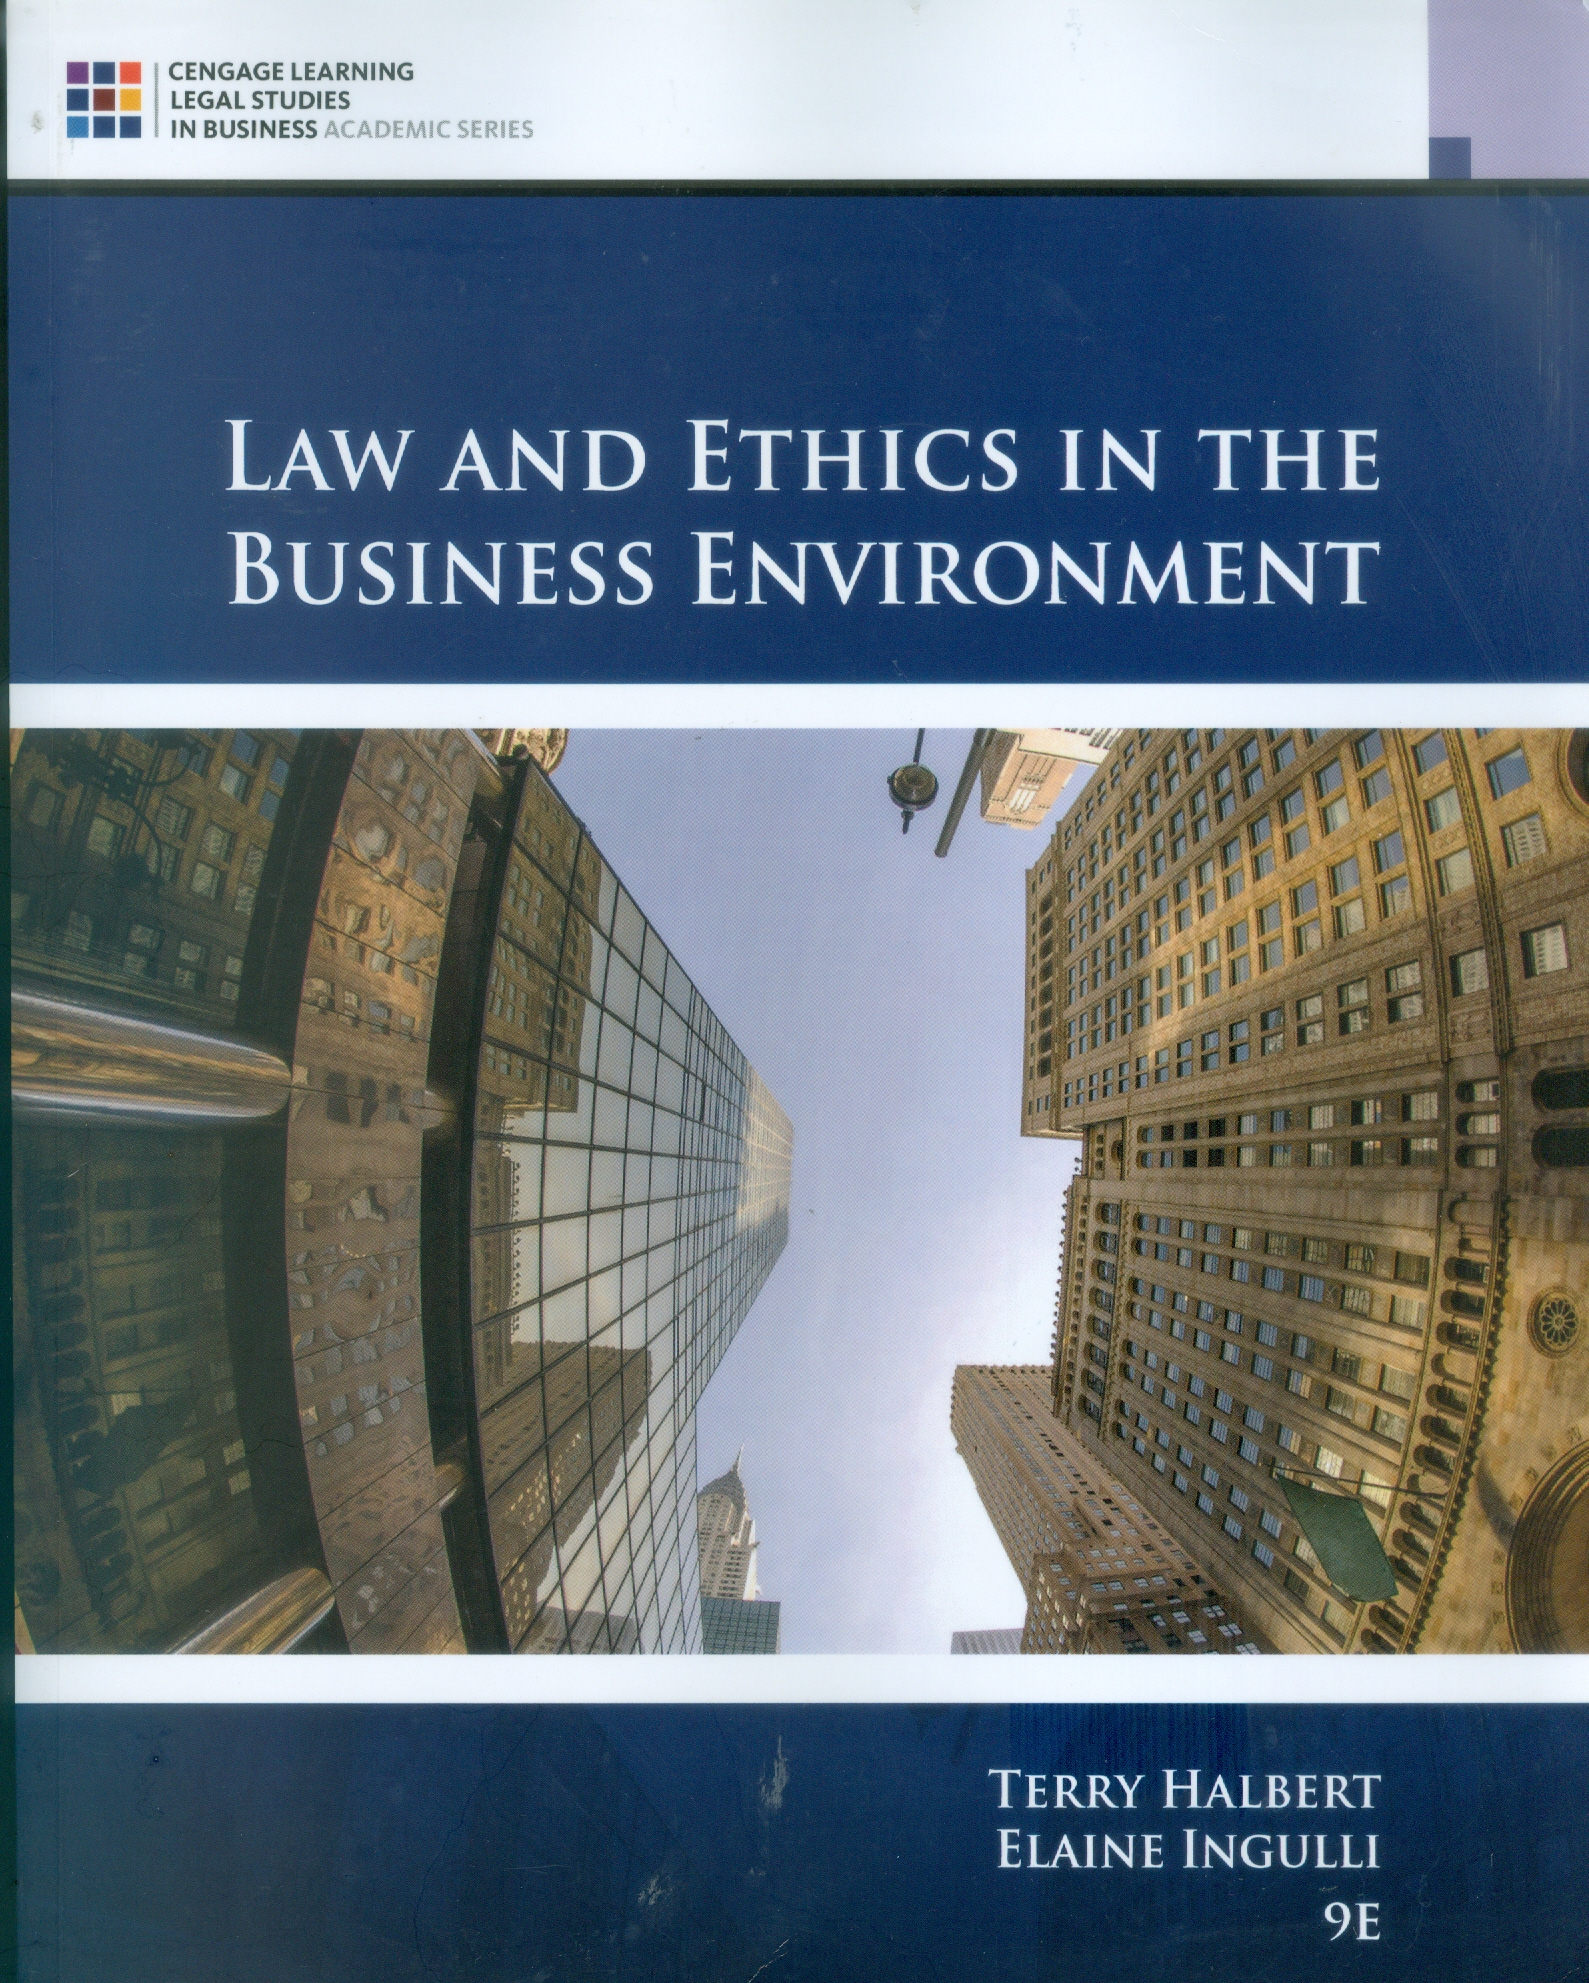 law and ethics0001.jpg